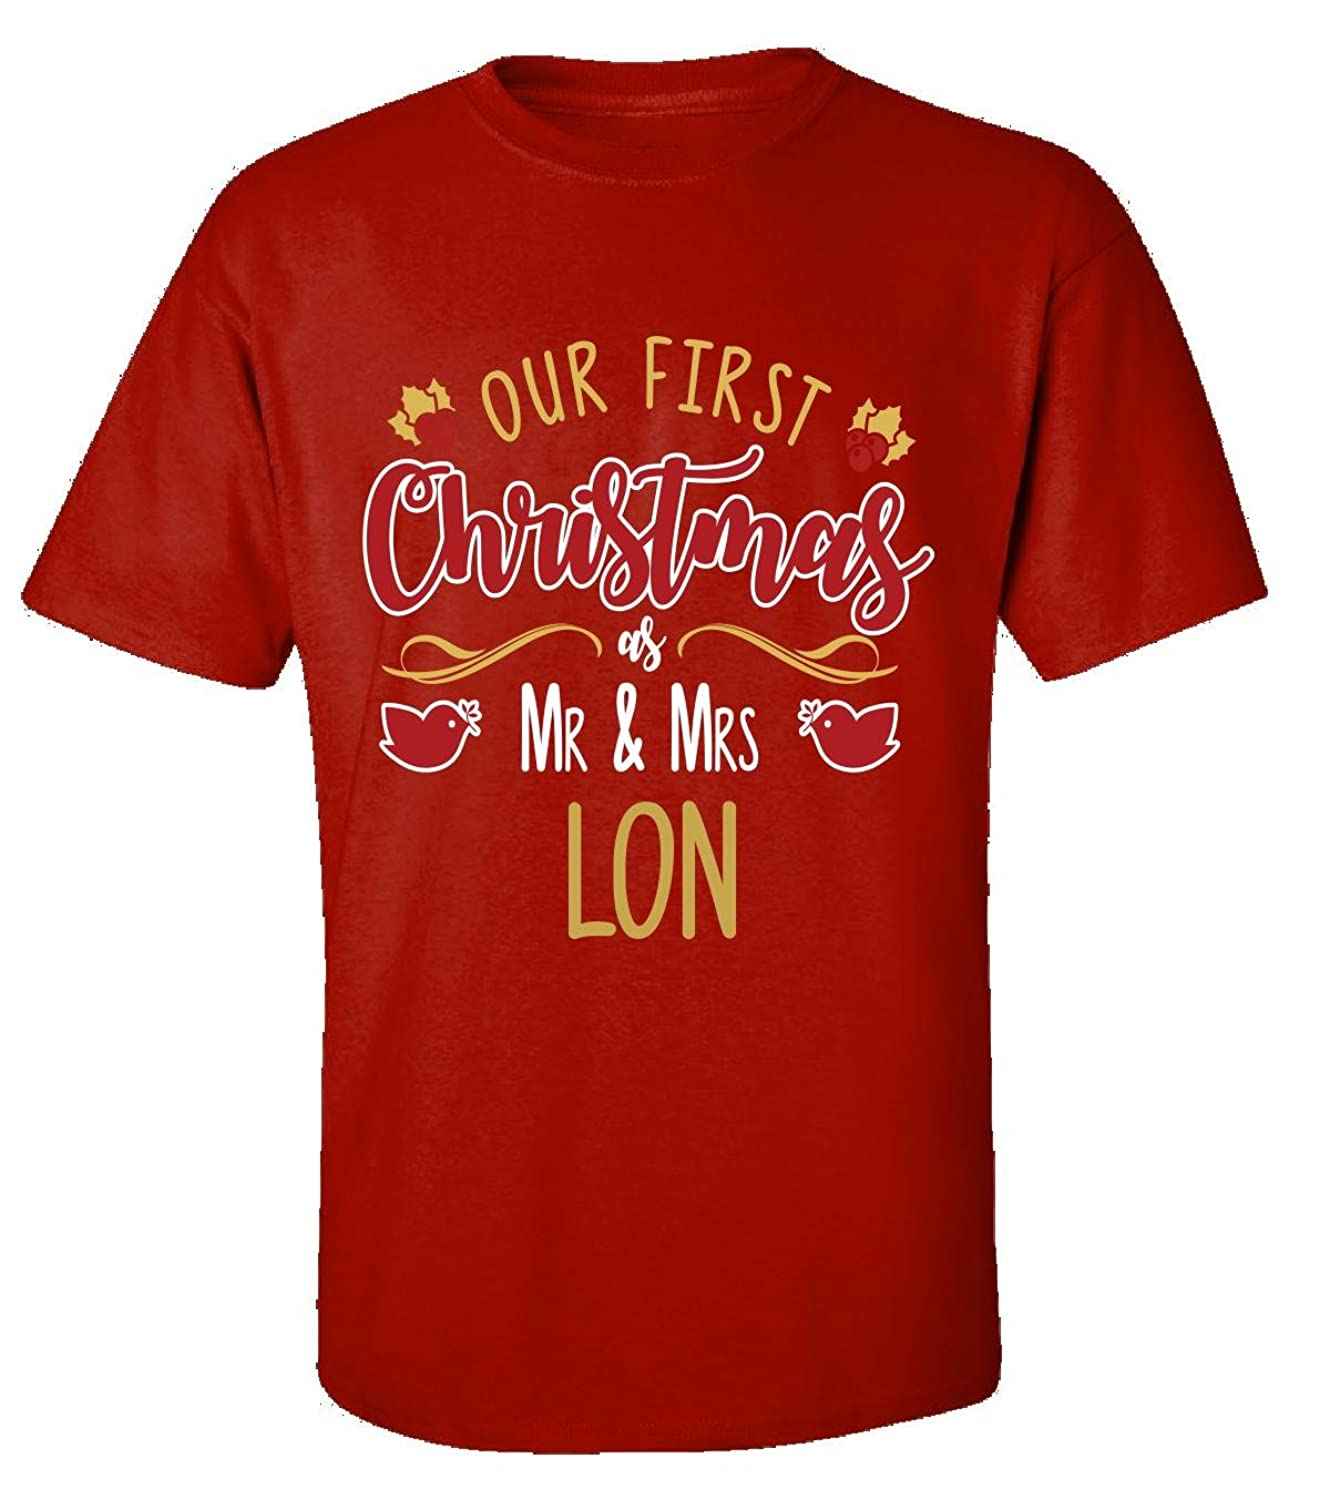 Our First Christmas As Mr - Mrs Lon - Adult Shirt